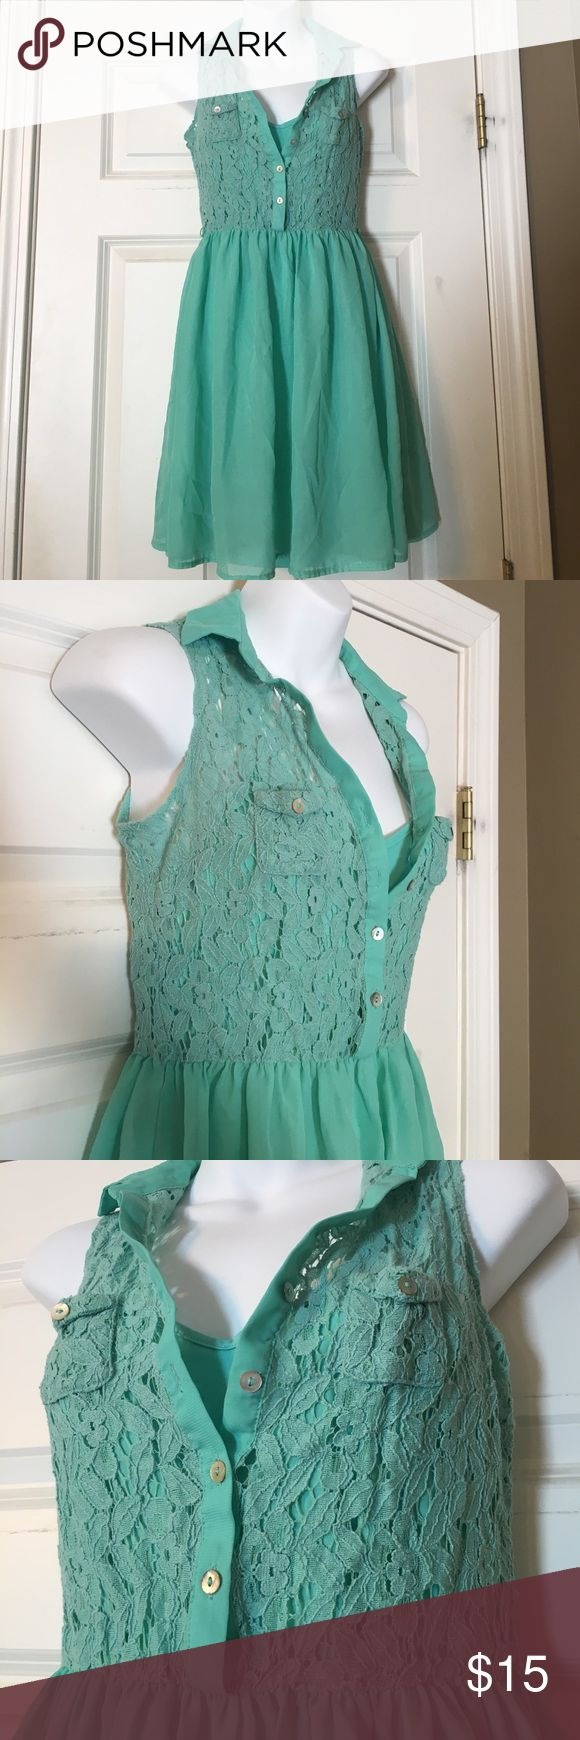 Mint Green Dress Size small mint green dress in good condition still. Has lace top, and the skirt is a sheer material. The dress has a slip underneath. If you have any questions, feel free to ask! :) American Rag Dresses Mini